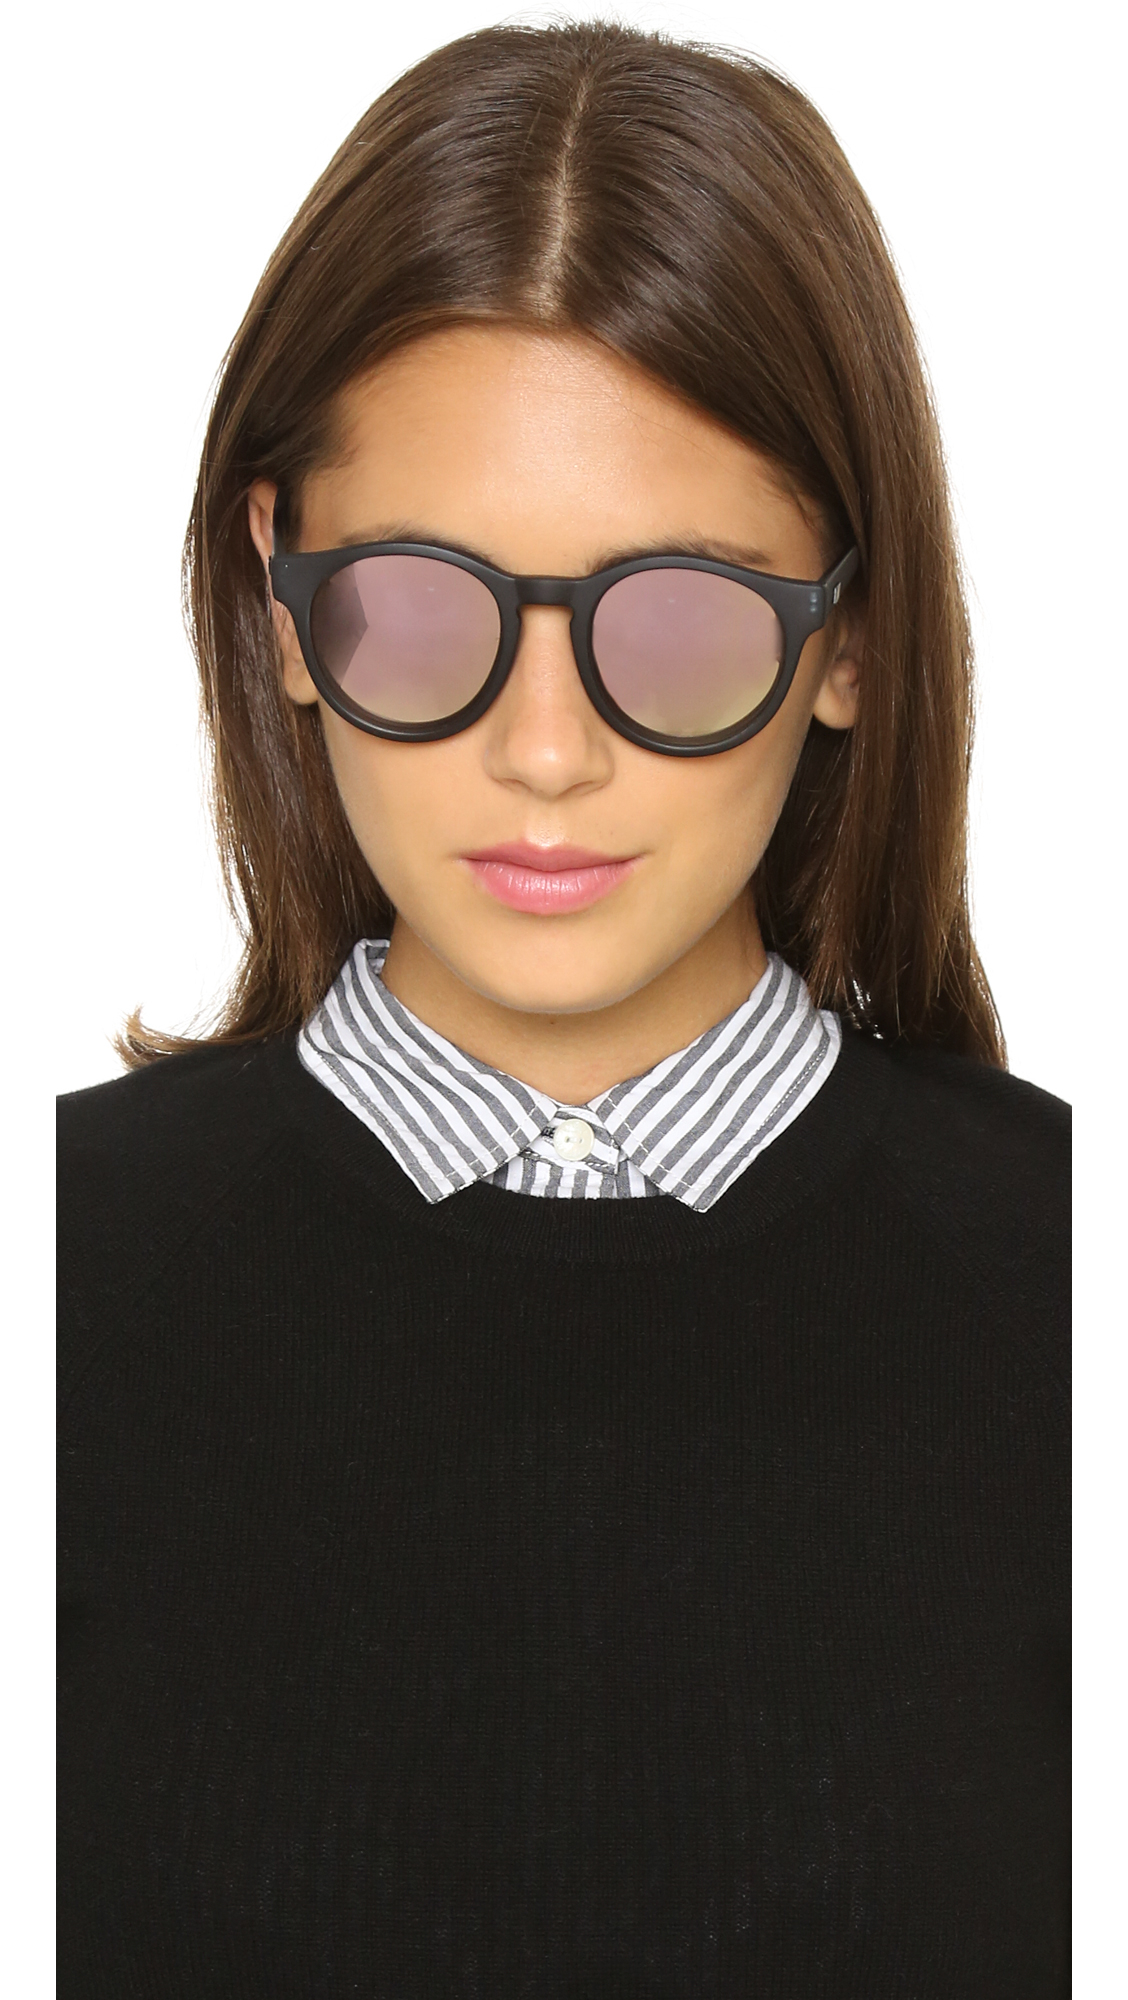 111153ad0d Lyst - Le Specs Limited Edition Hey Macarena Sunglasses - Matte ...